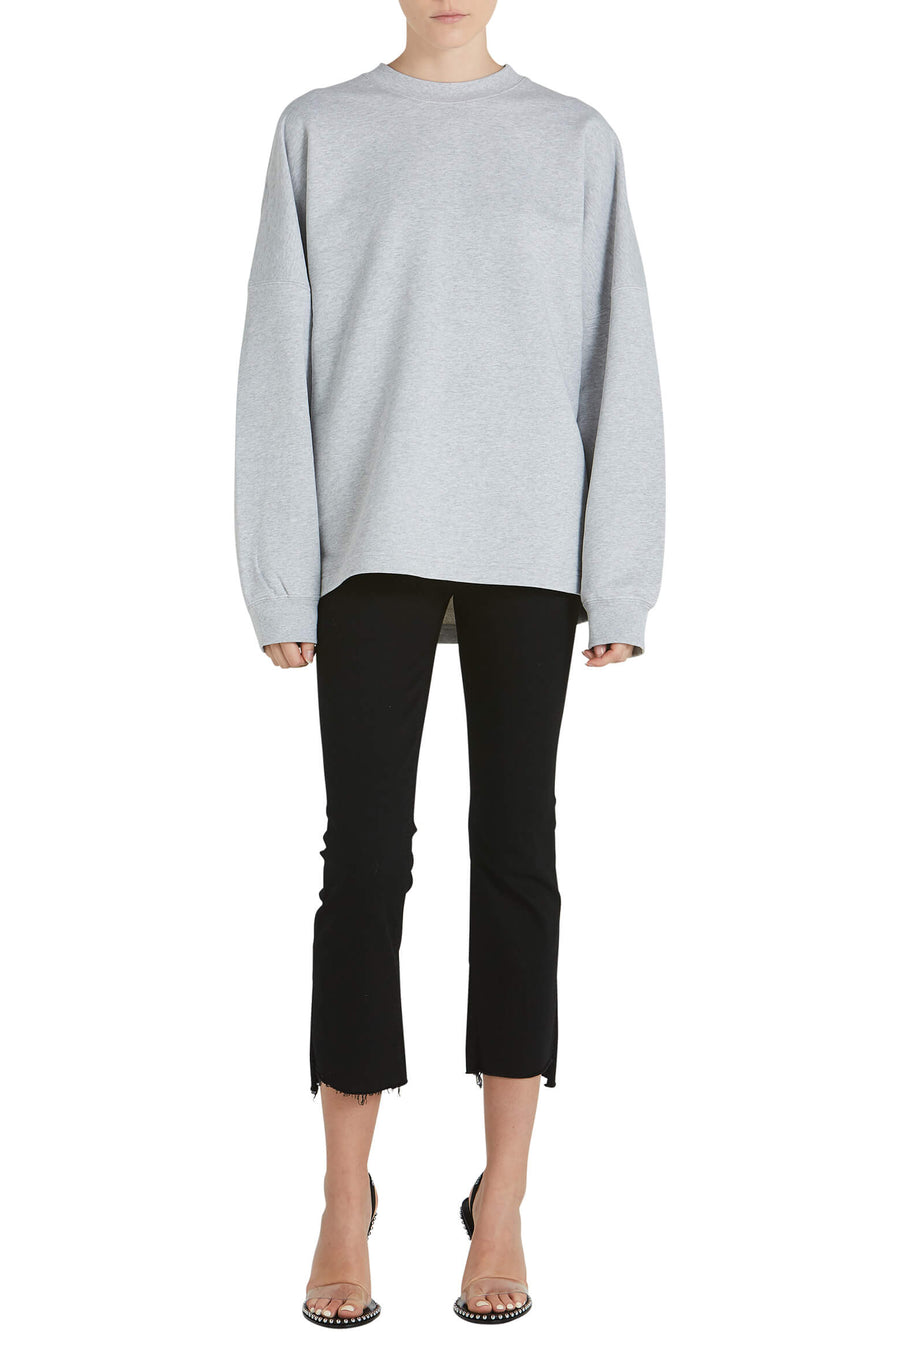 T By Alexander Wang Dry French Terry Crewneck Sweatshirt Back